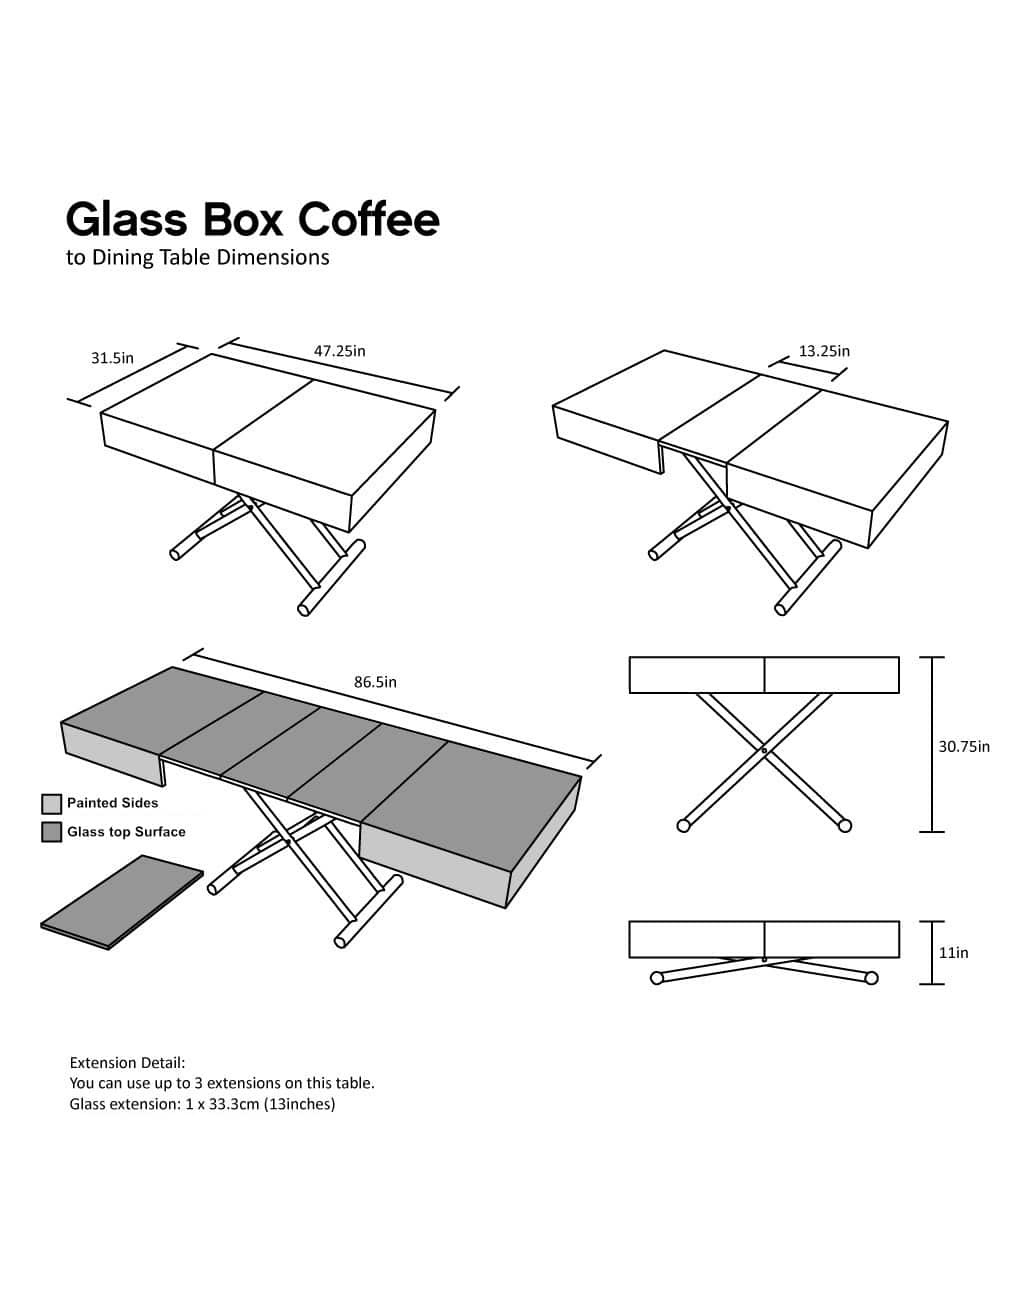 Glass Box Coffee Convertible Furniture Expand Furniture Folding Tables Smarter Wall Beds Space Savers